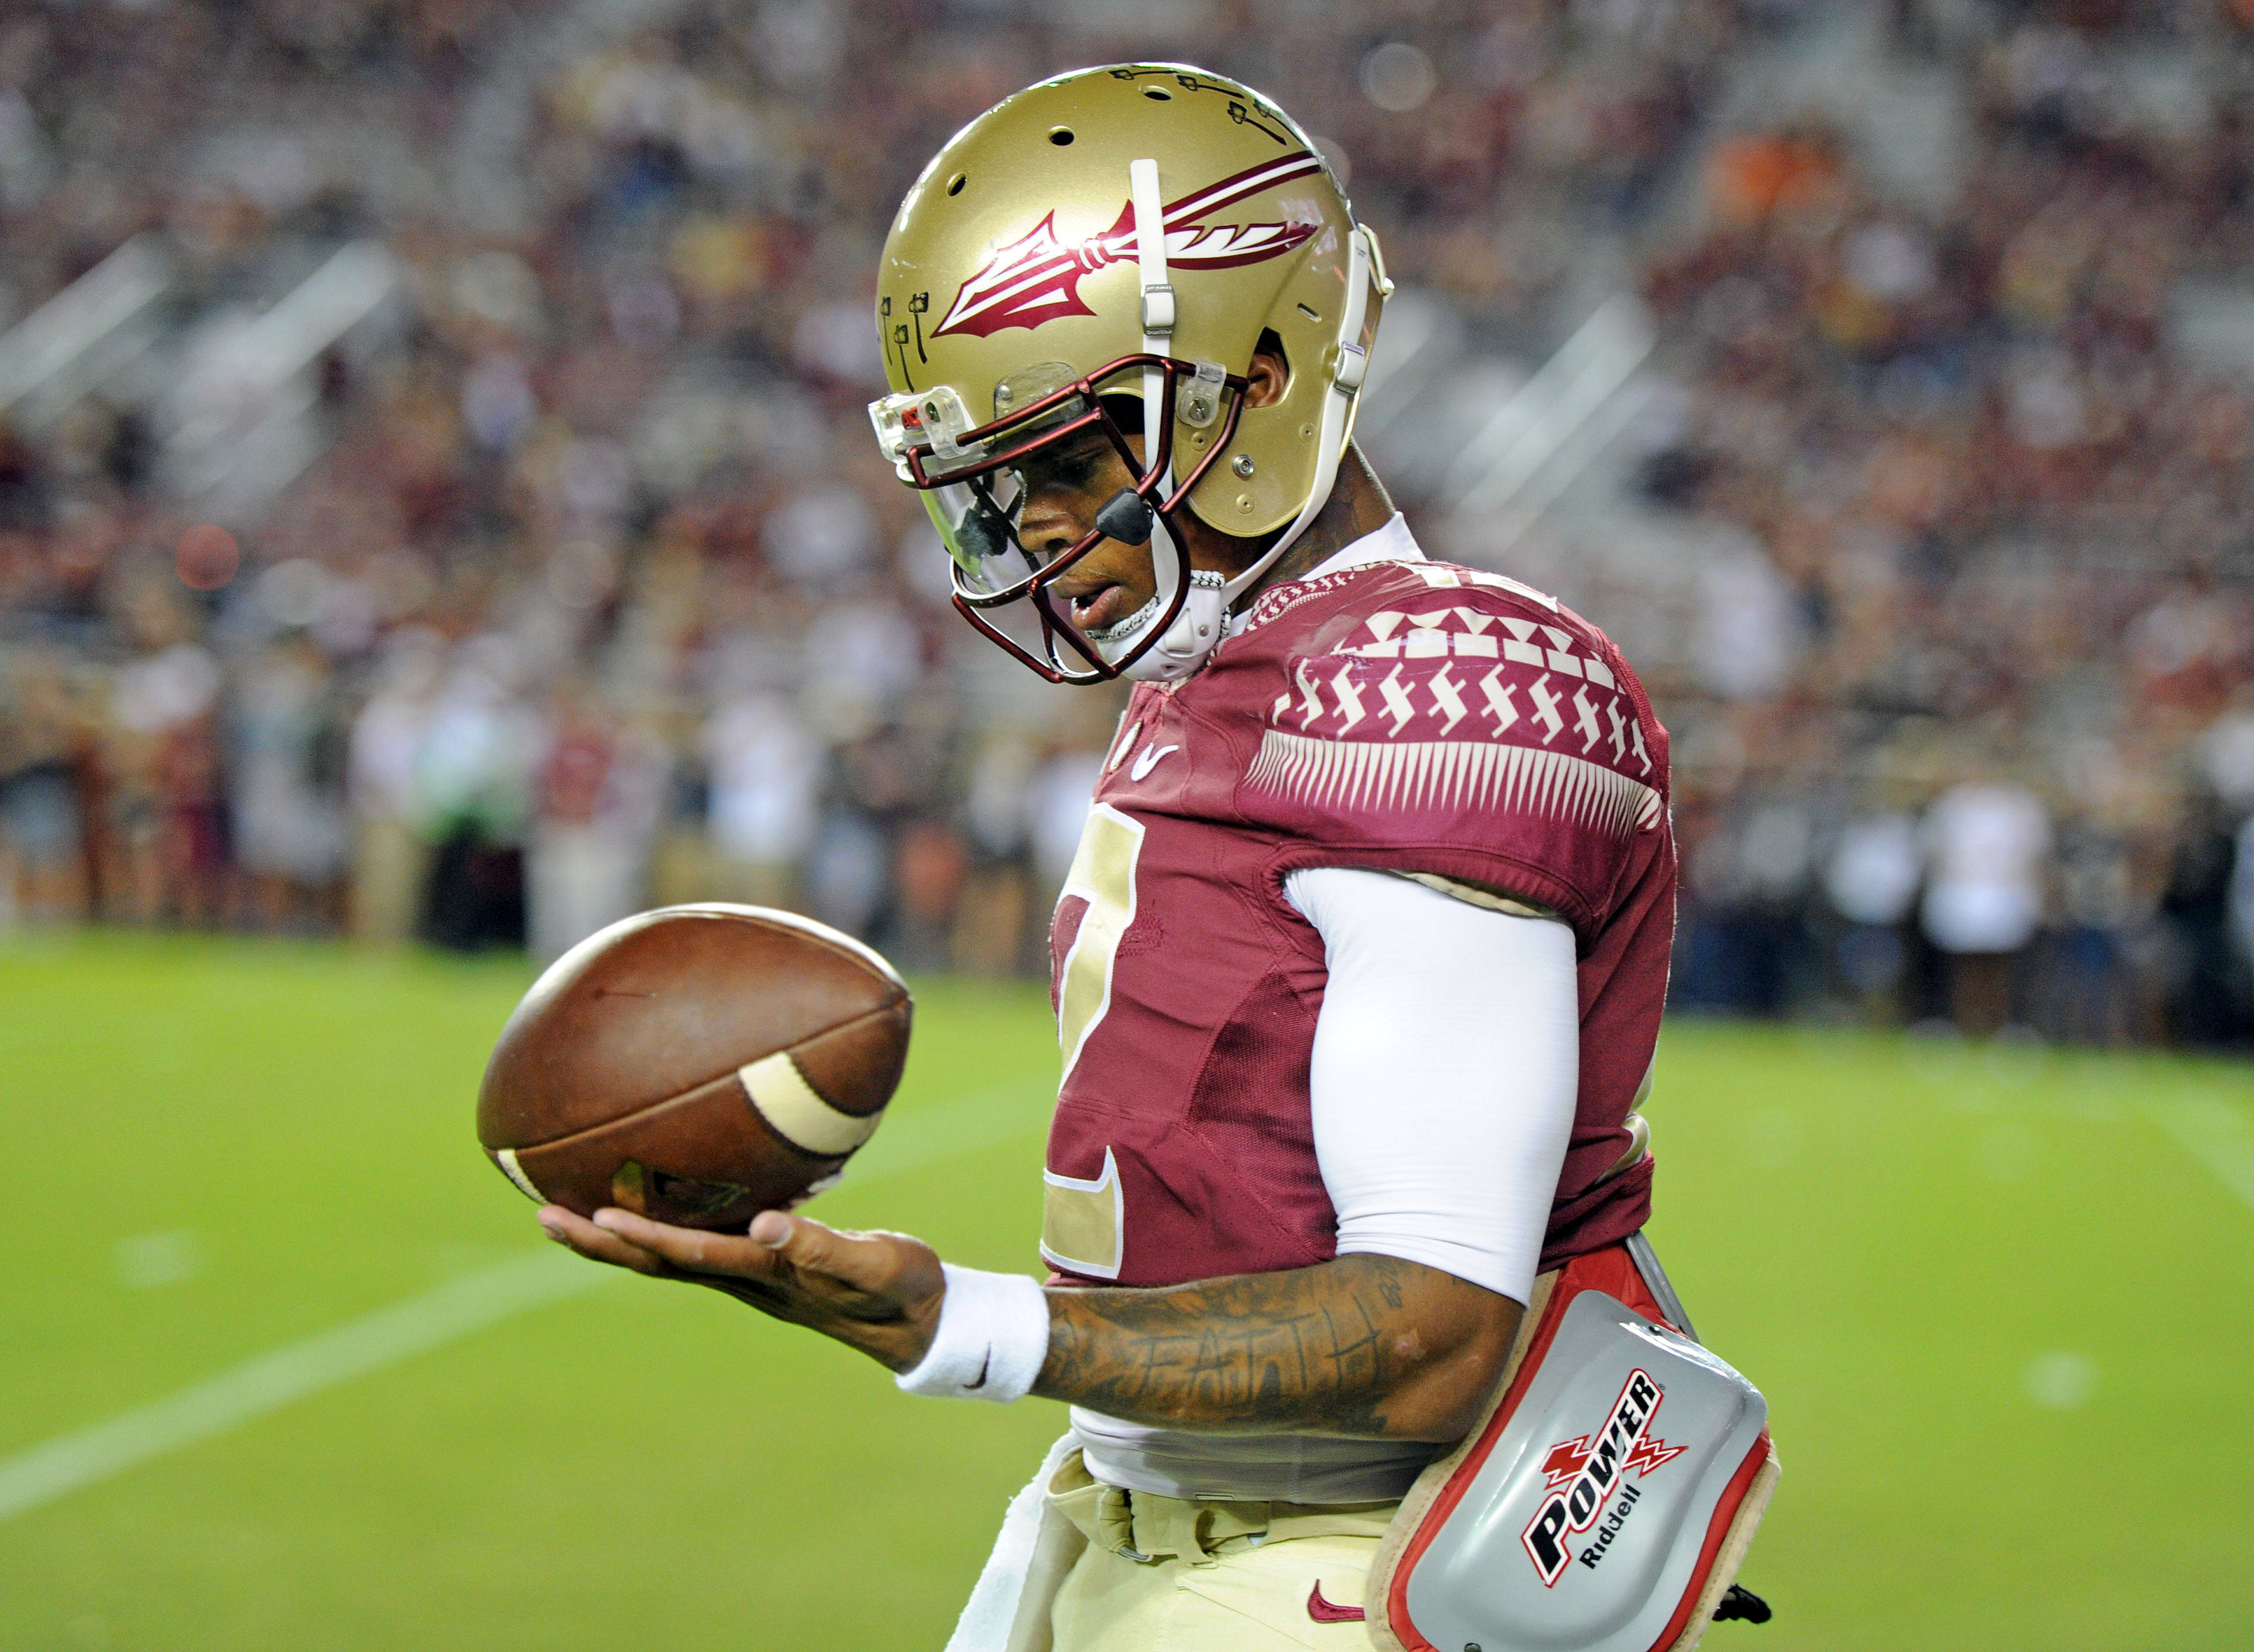 Oct 29, 2016; Tallahassee, FL, USA; Florida State Seminoles quarterback Deondre Francois (12) warms up before the game against the Clemson Tigers at Doak Campbell Stadium. Mandatory Credit: Melina Vastola-USA TODAY Sports